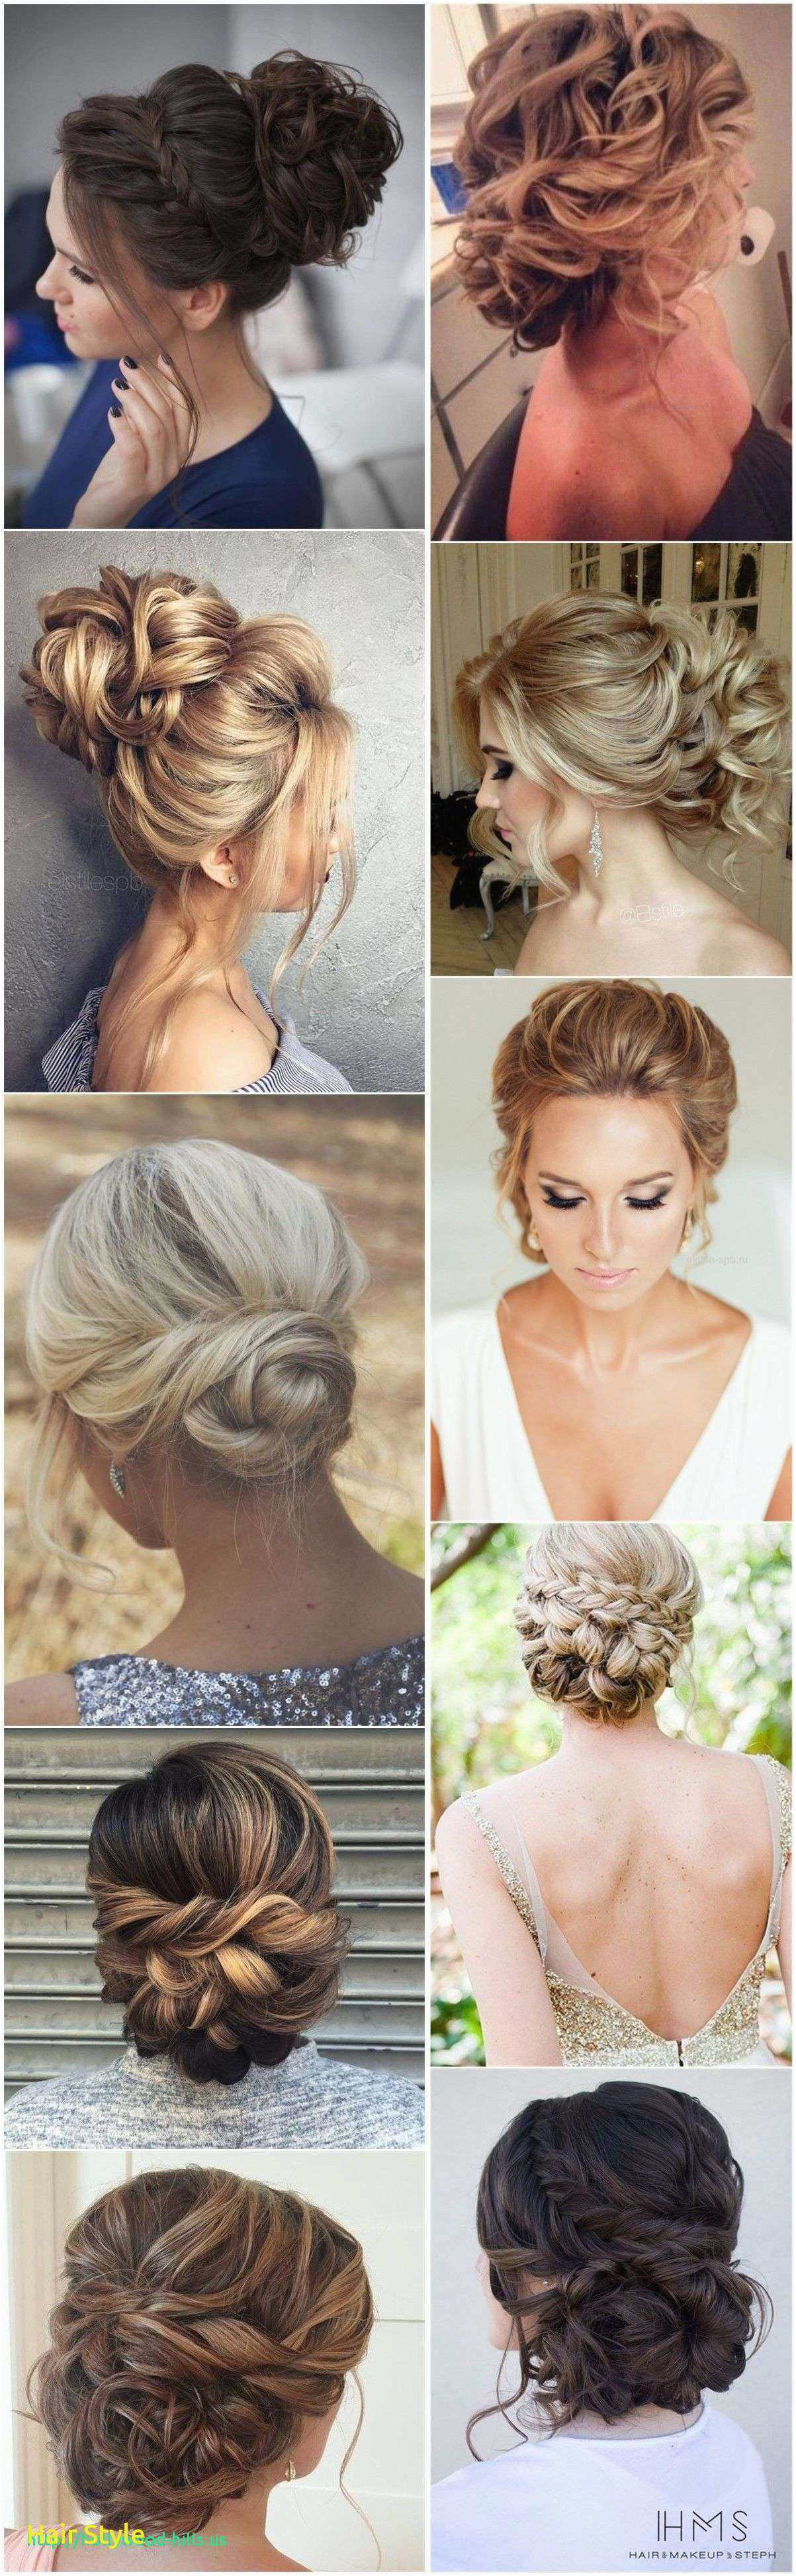 Wedding Hairstyles for Your Plan Wedding Hair Updo Indian Wedding Hairstyles New Lehenga Hairstyle 0d Review